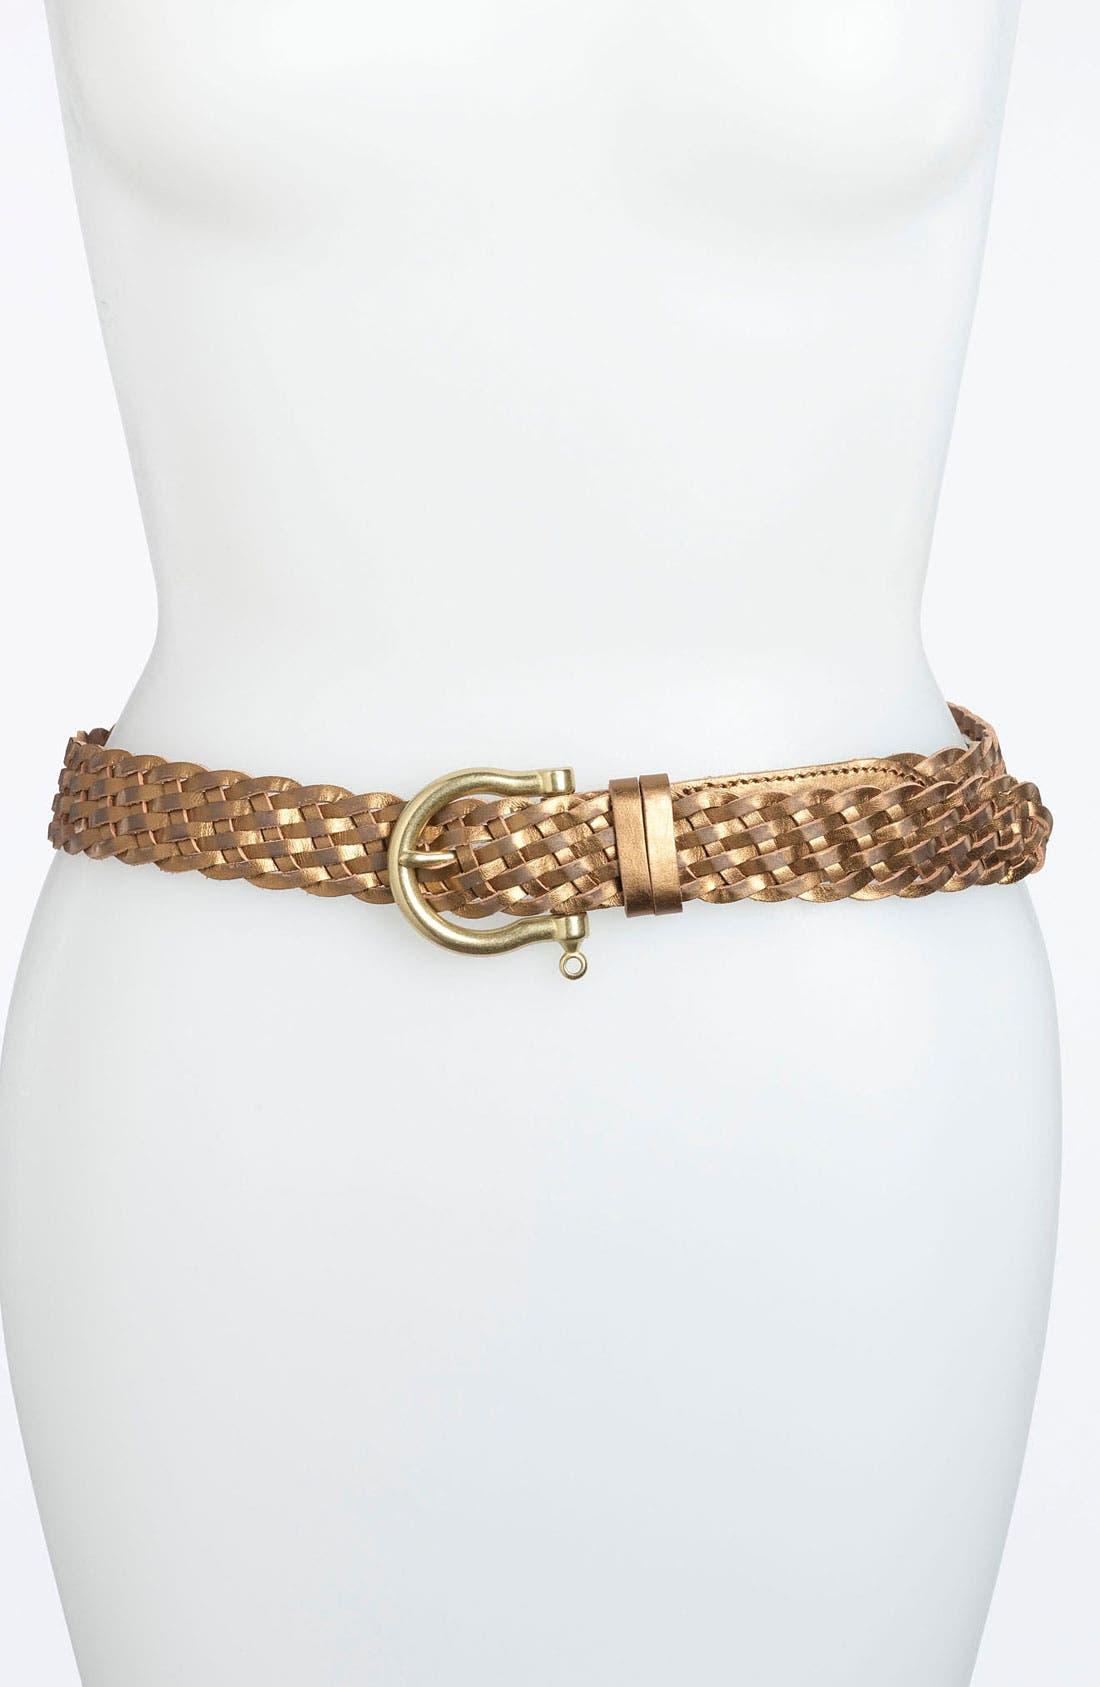 Alternate Image 1 Selected - Sperry Top-Sider® Metallic Braided Belt